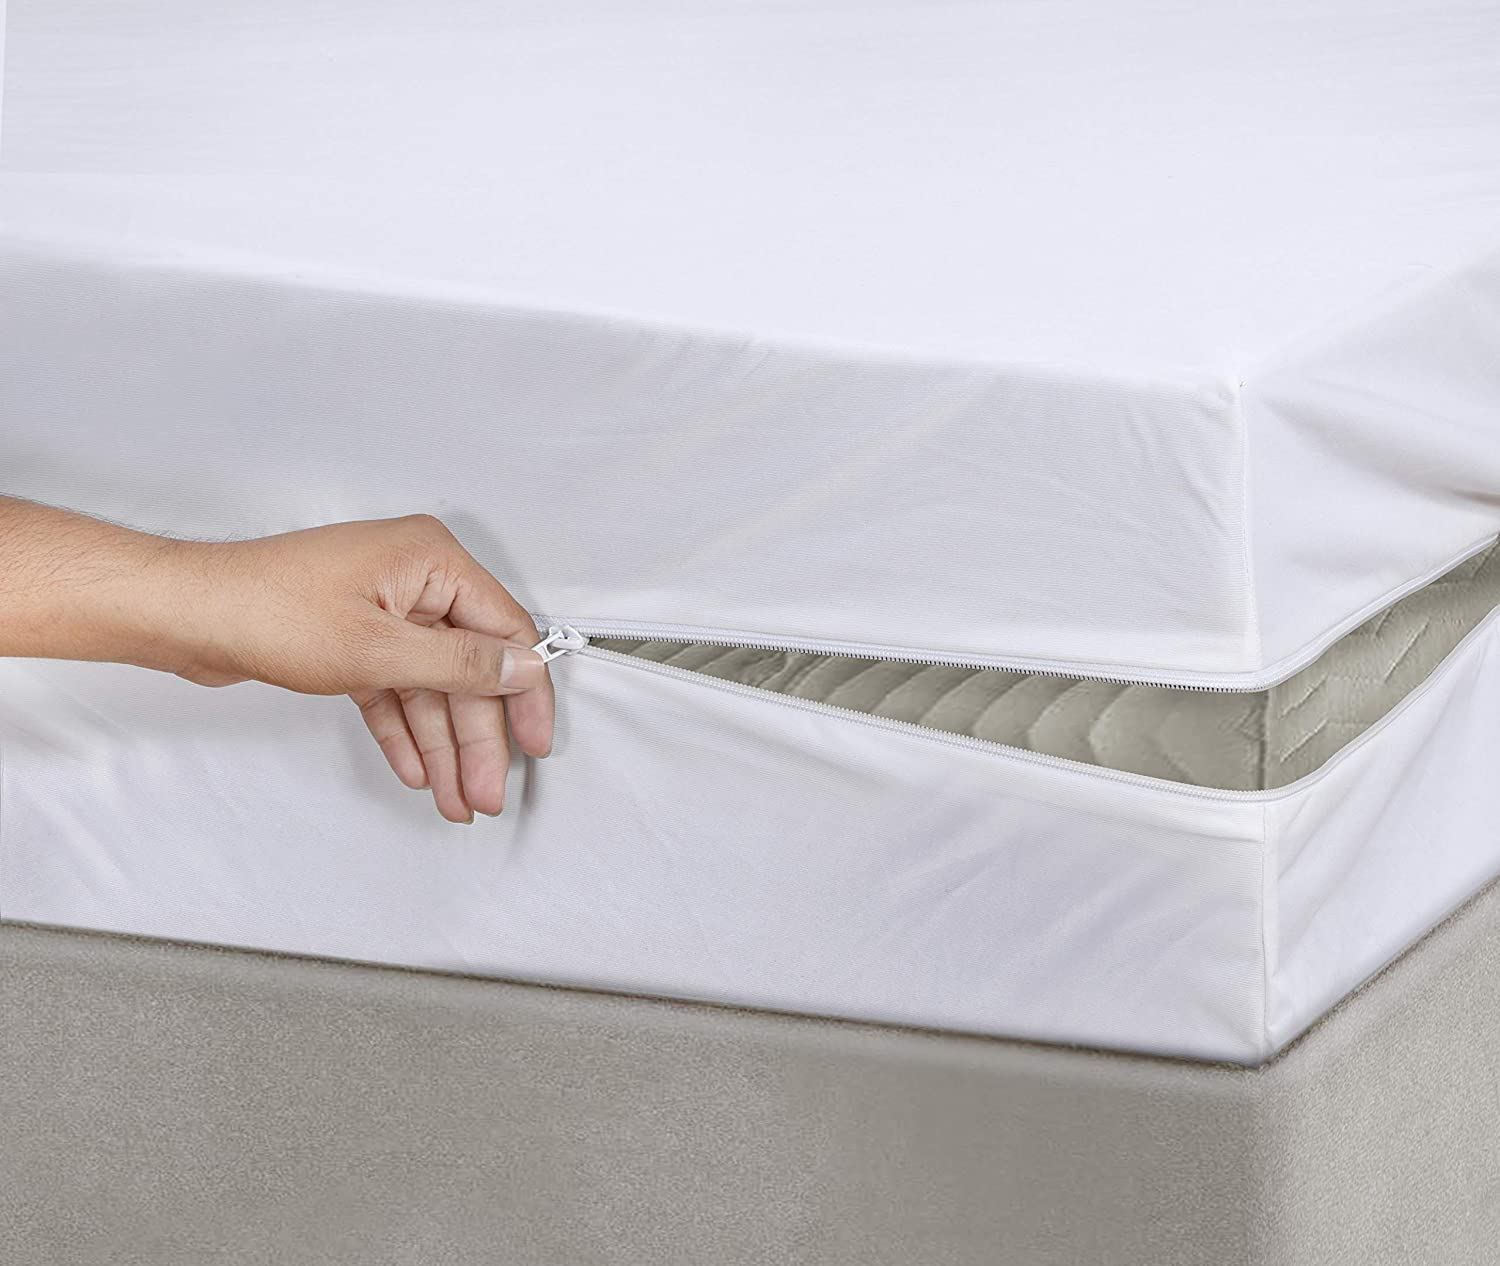 Things You Need To Know About Mattress Protectors